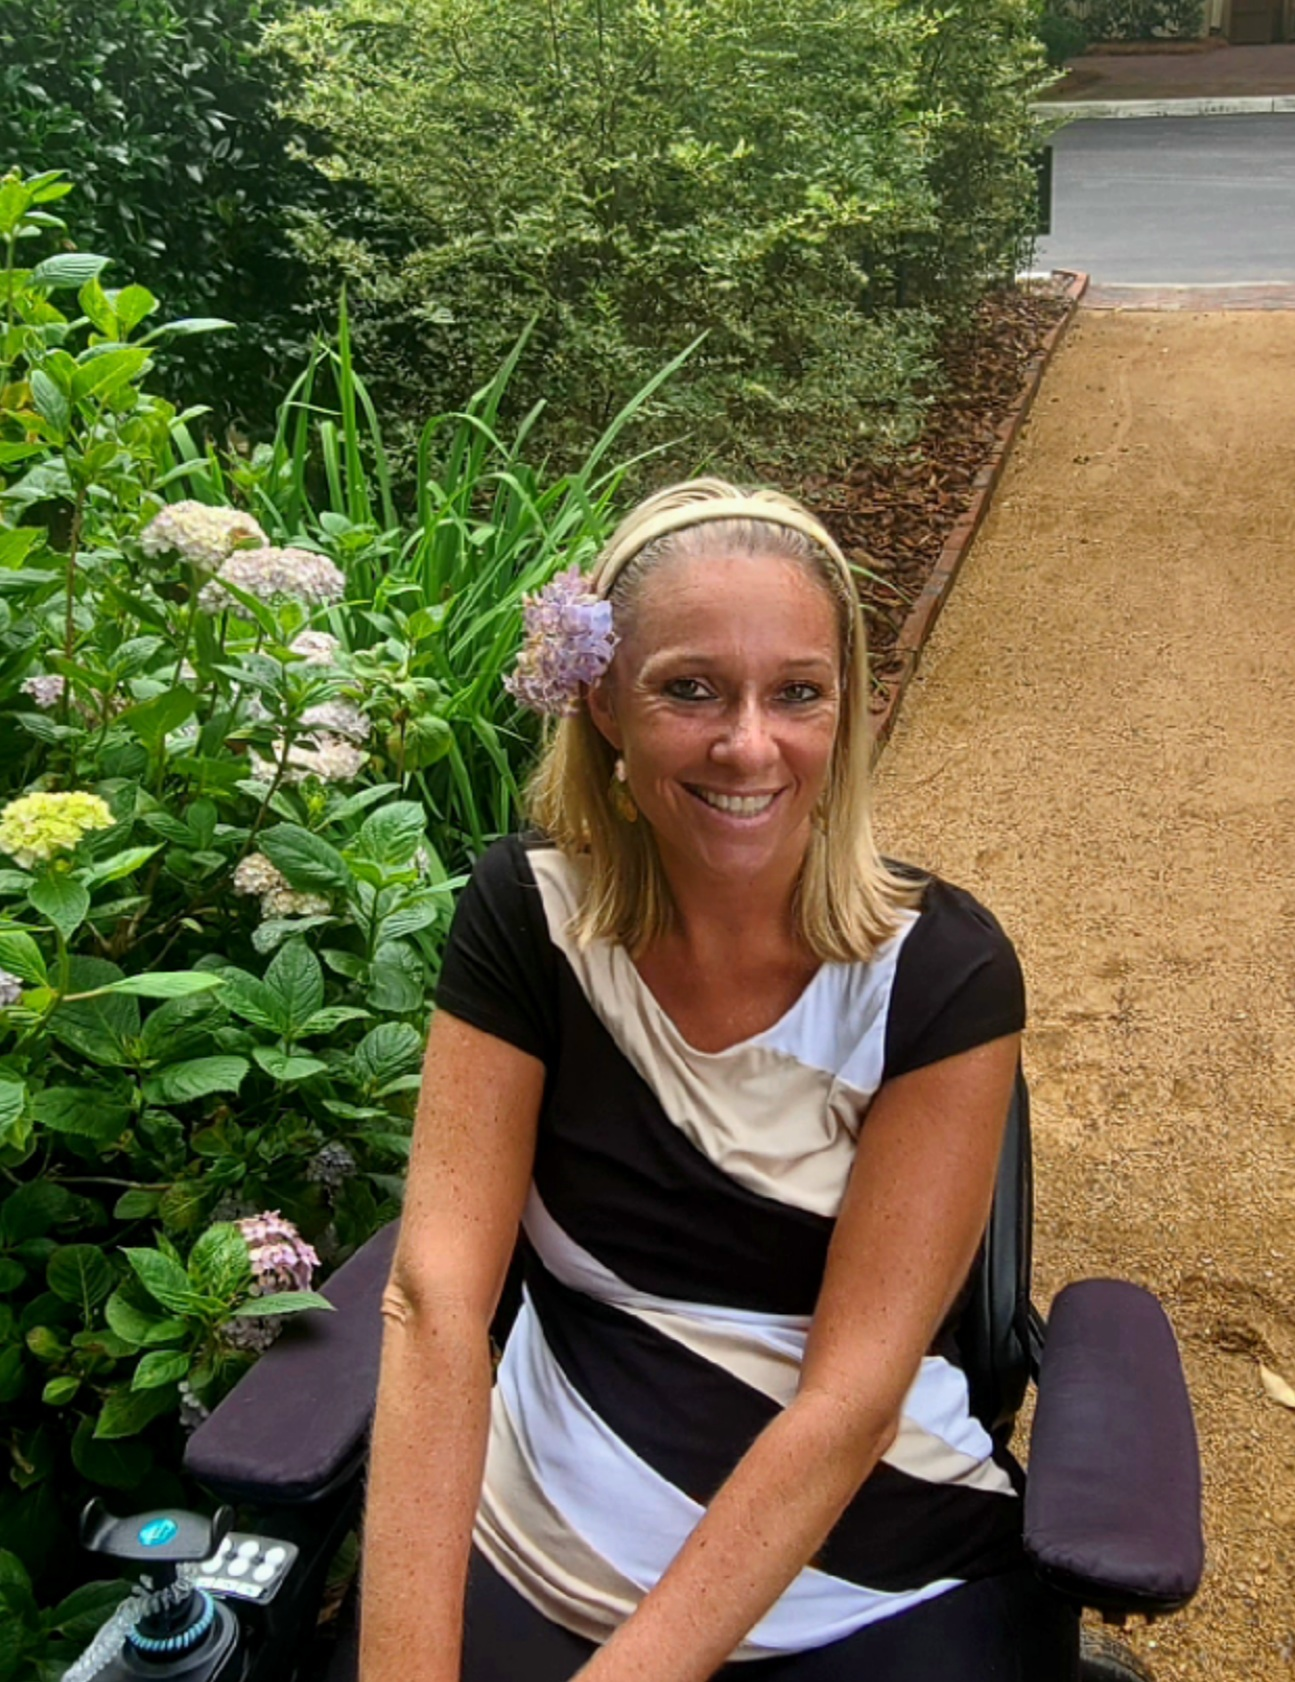 Ali wearing a black and white shirt. She is outside next to a hydrangea plant. She has blonde hair. Ali uses a wheelchair.